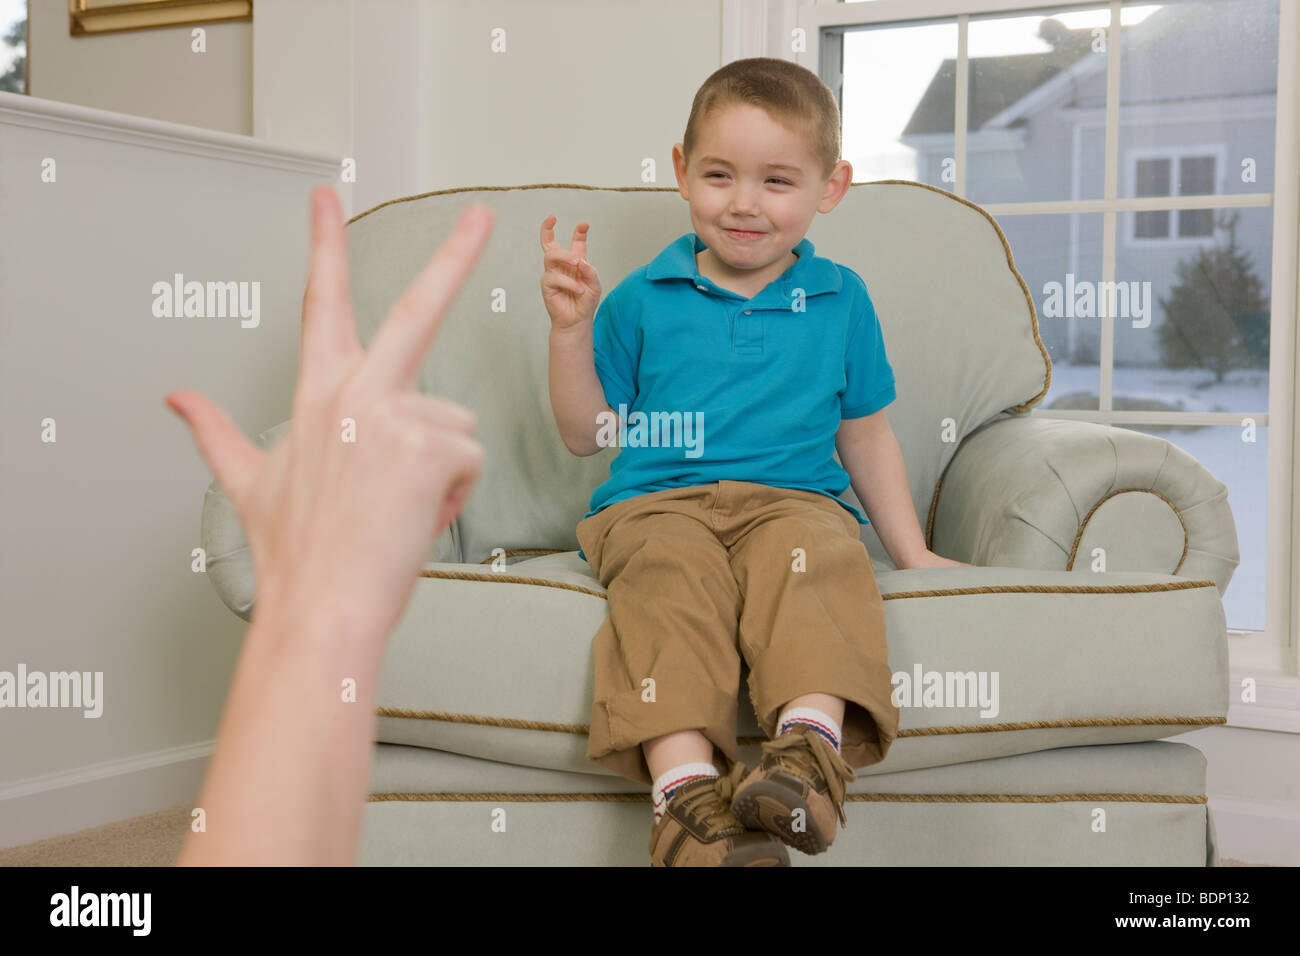 Boy signing the number '3' in American Sign Language - Stock Image